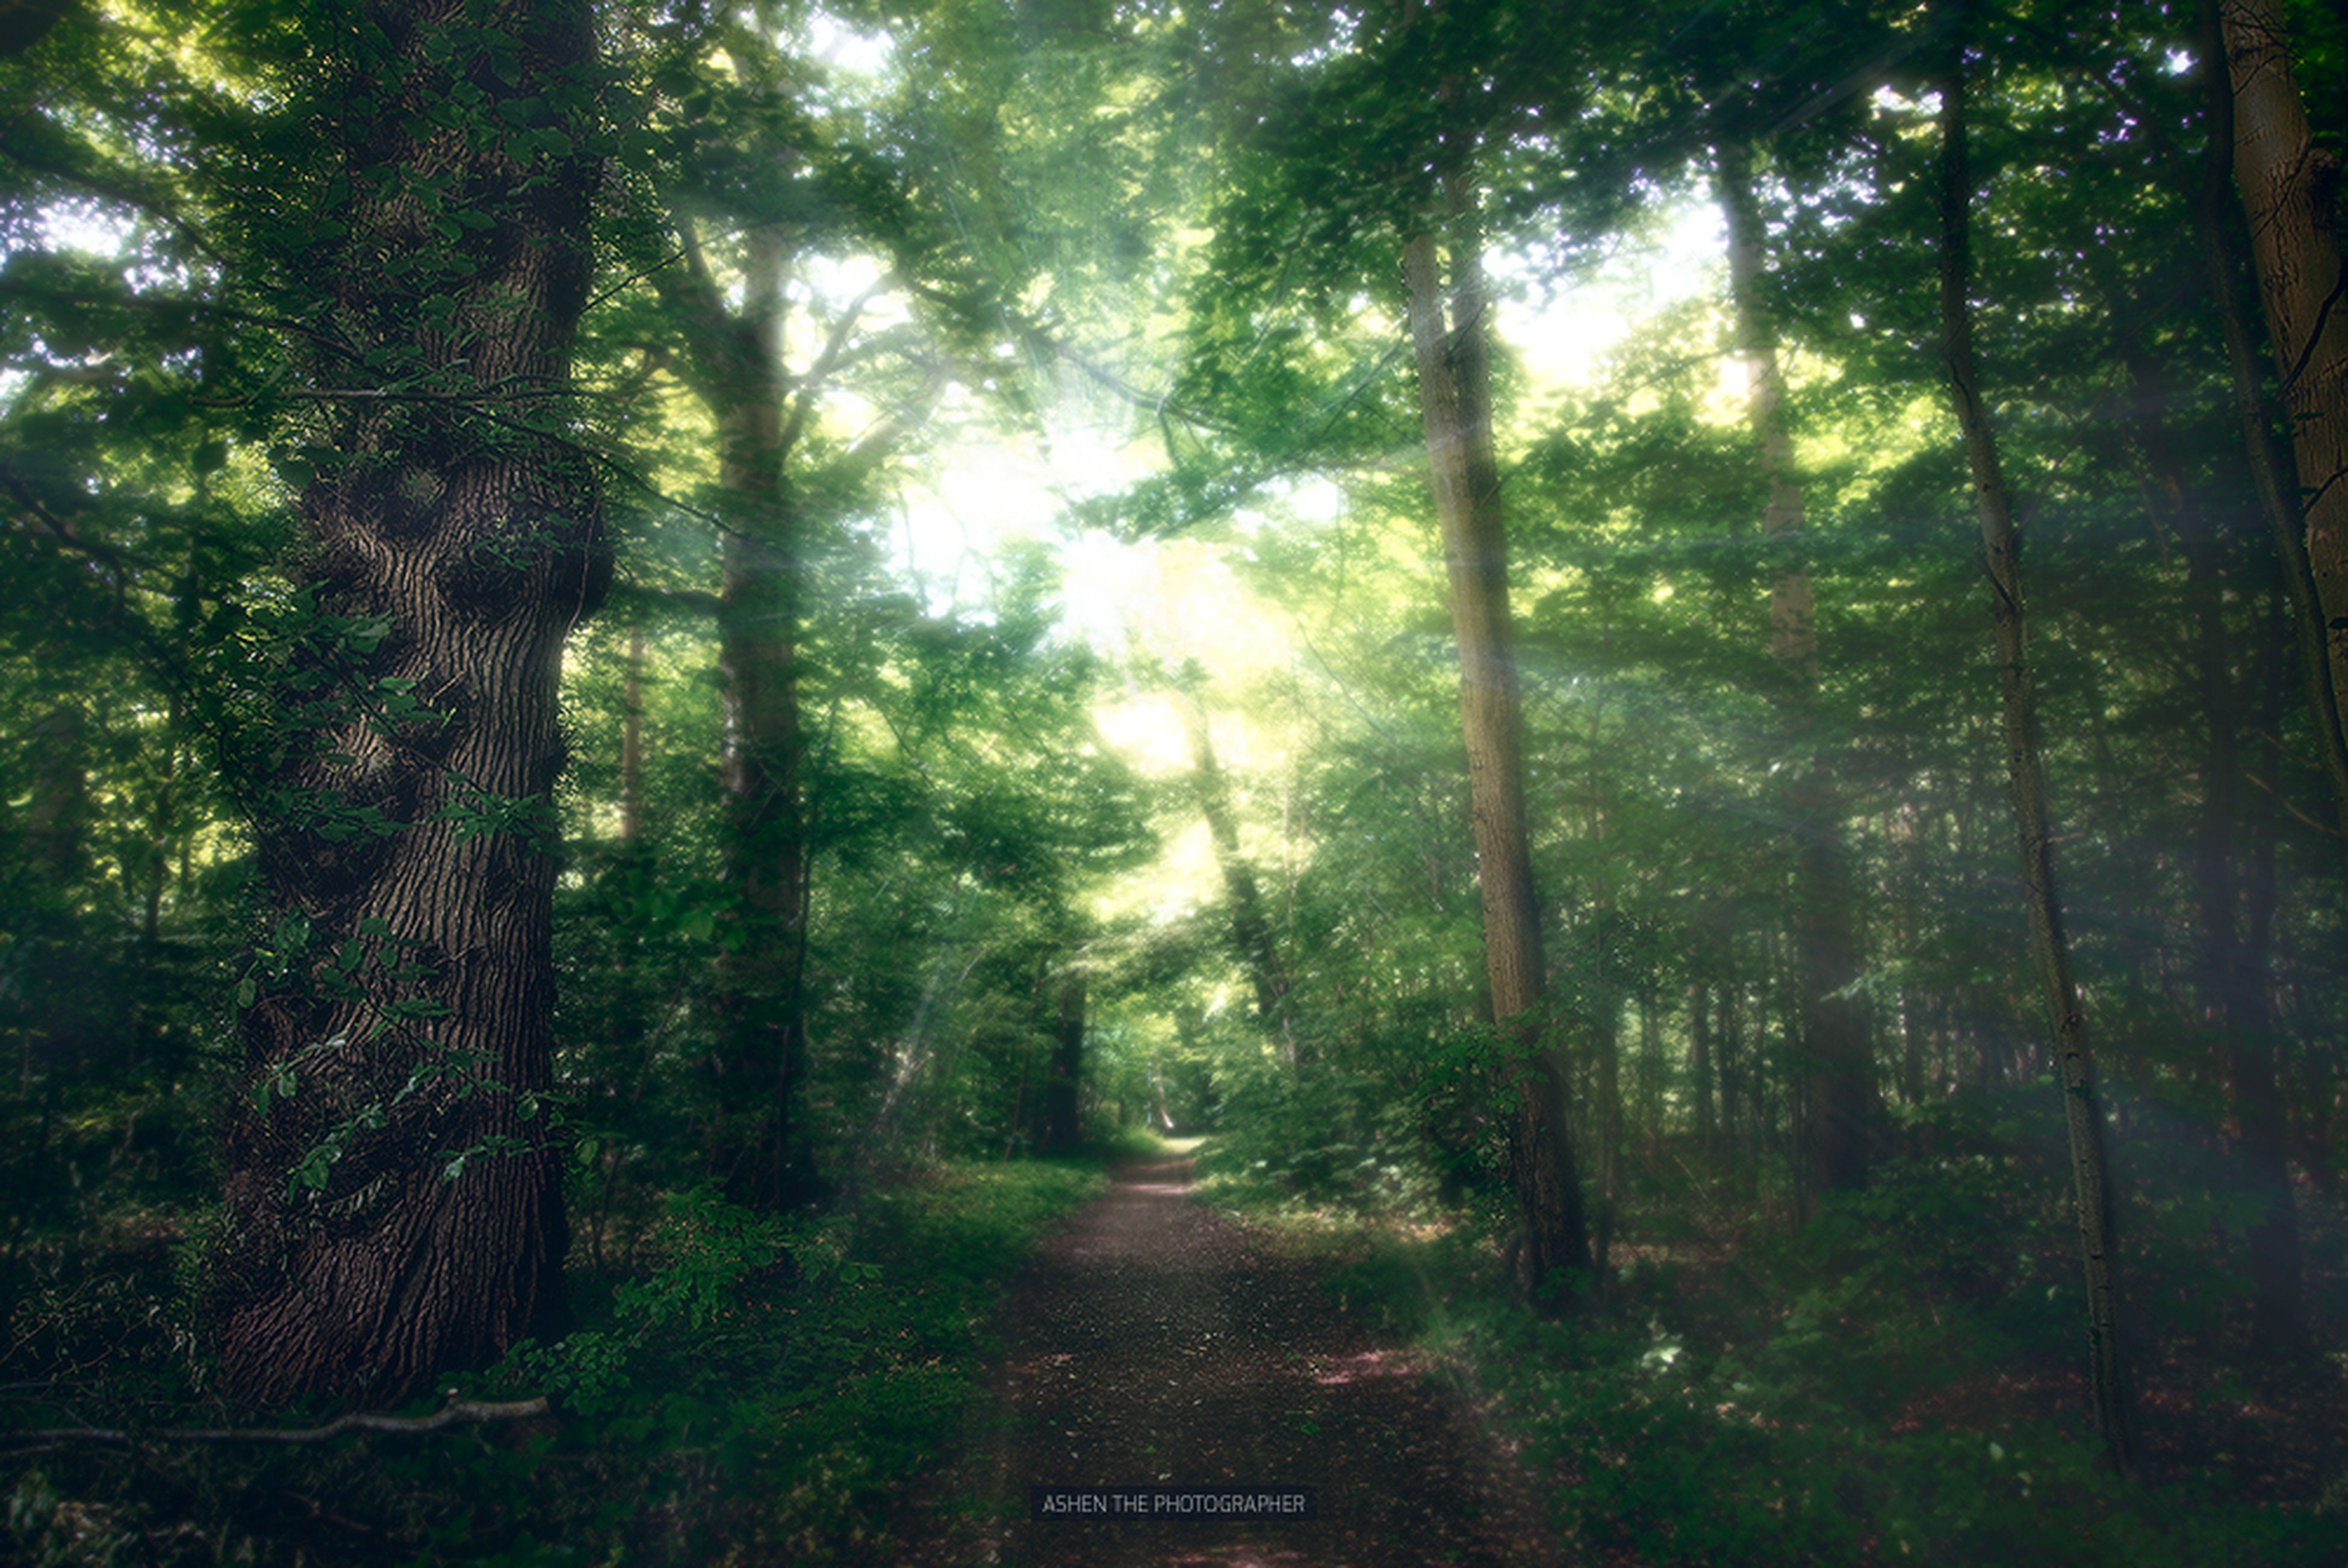 tree, the way forward, forest, growth, tranquility, tree trunk, woodland, nature, diminishing perspective, tranquil scene, vanishing point, beauty in nature, green color, footpath, scenics, non-urban scene, outdoors, day, lush foliage, treelined, no people, idyllic, narrow, landscape, empty, travel destinations, remote